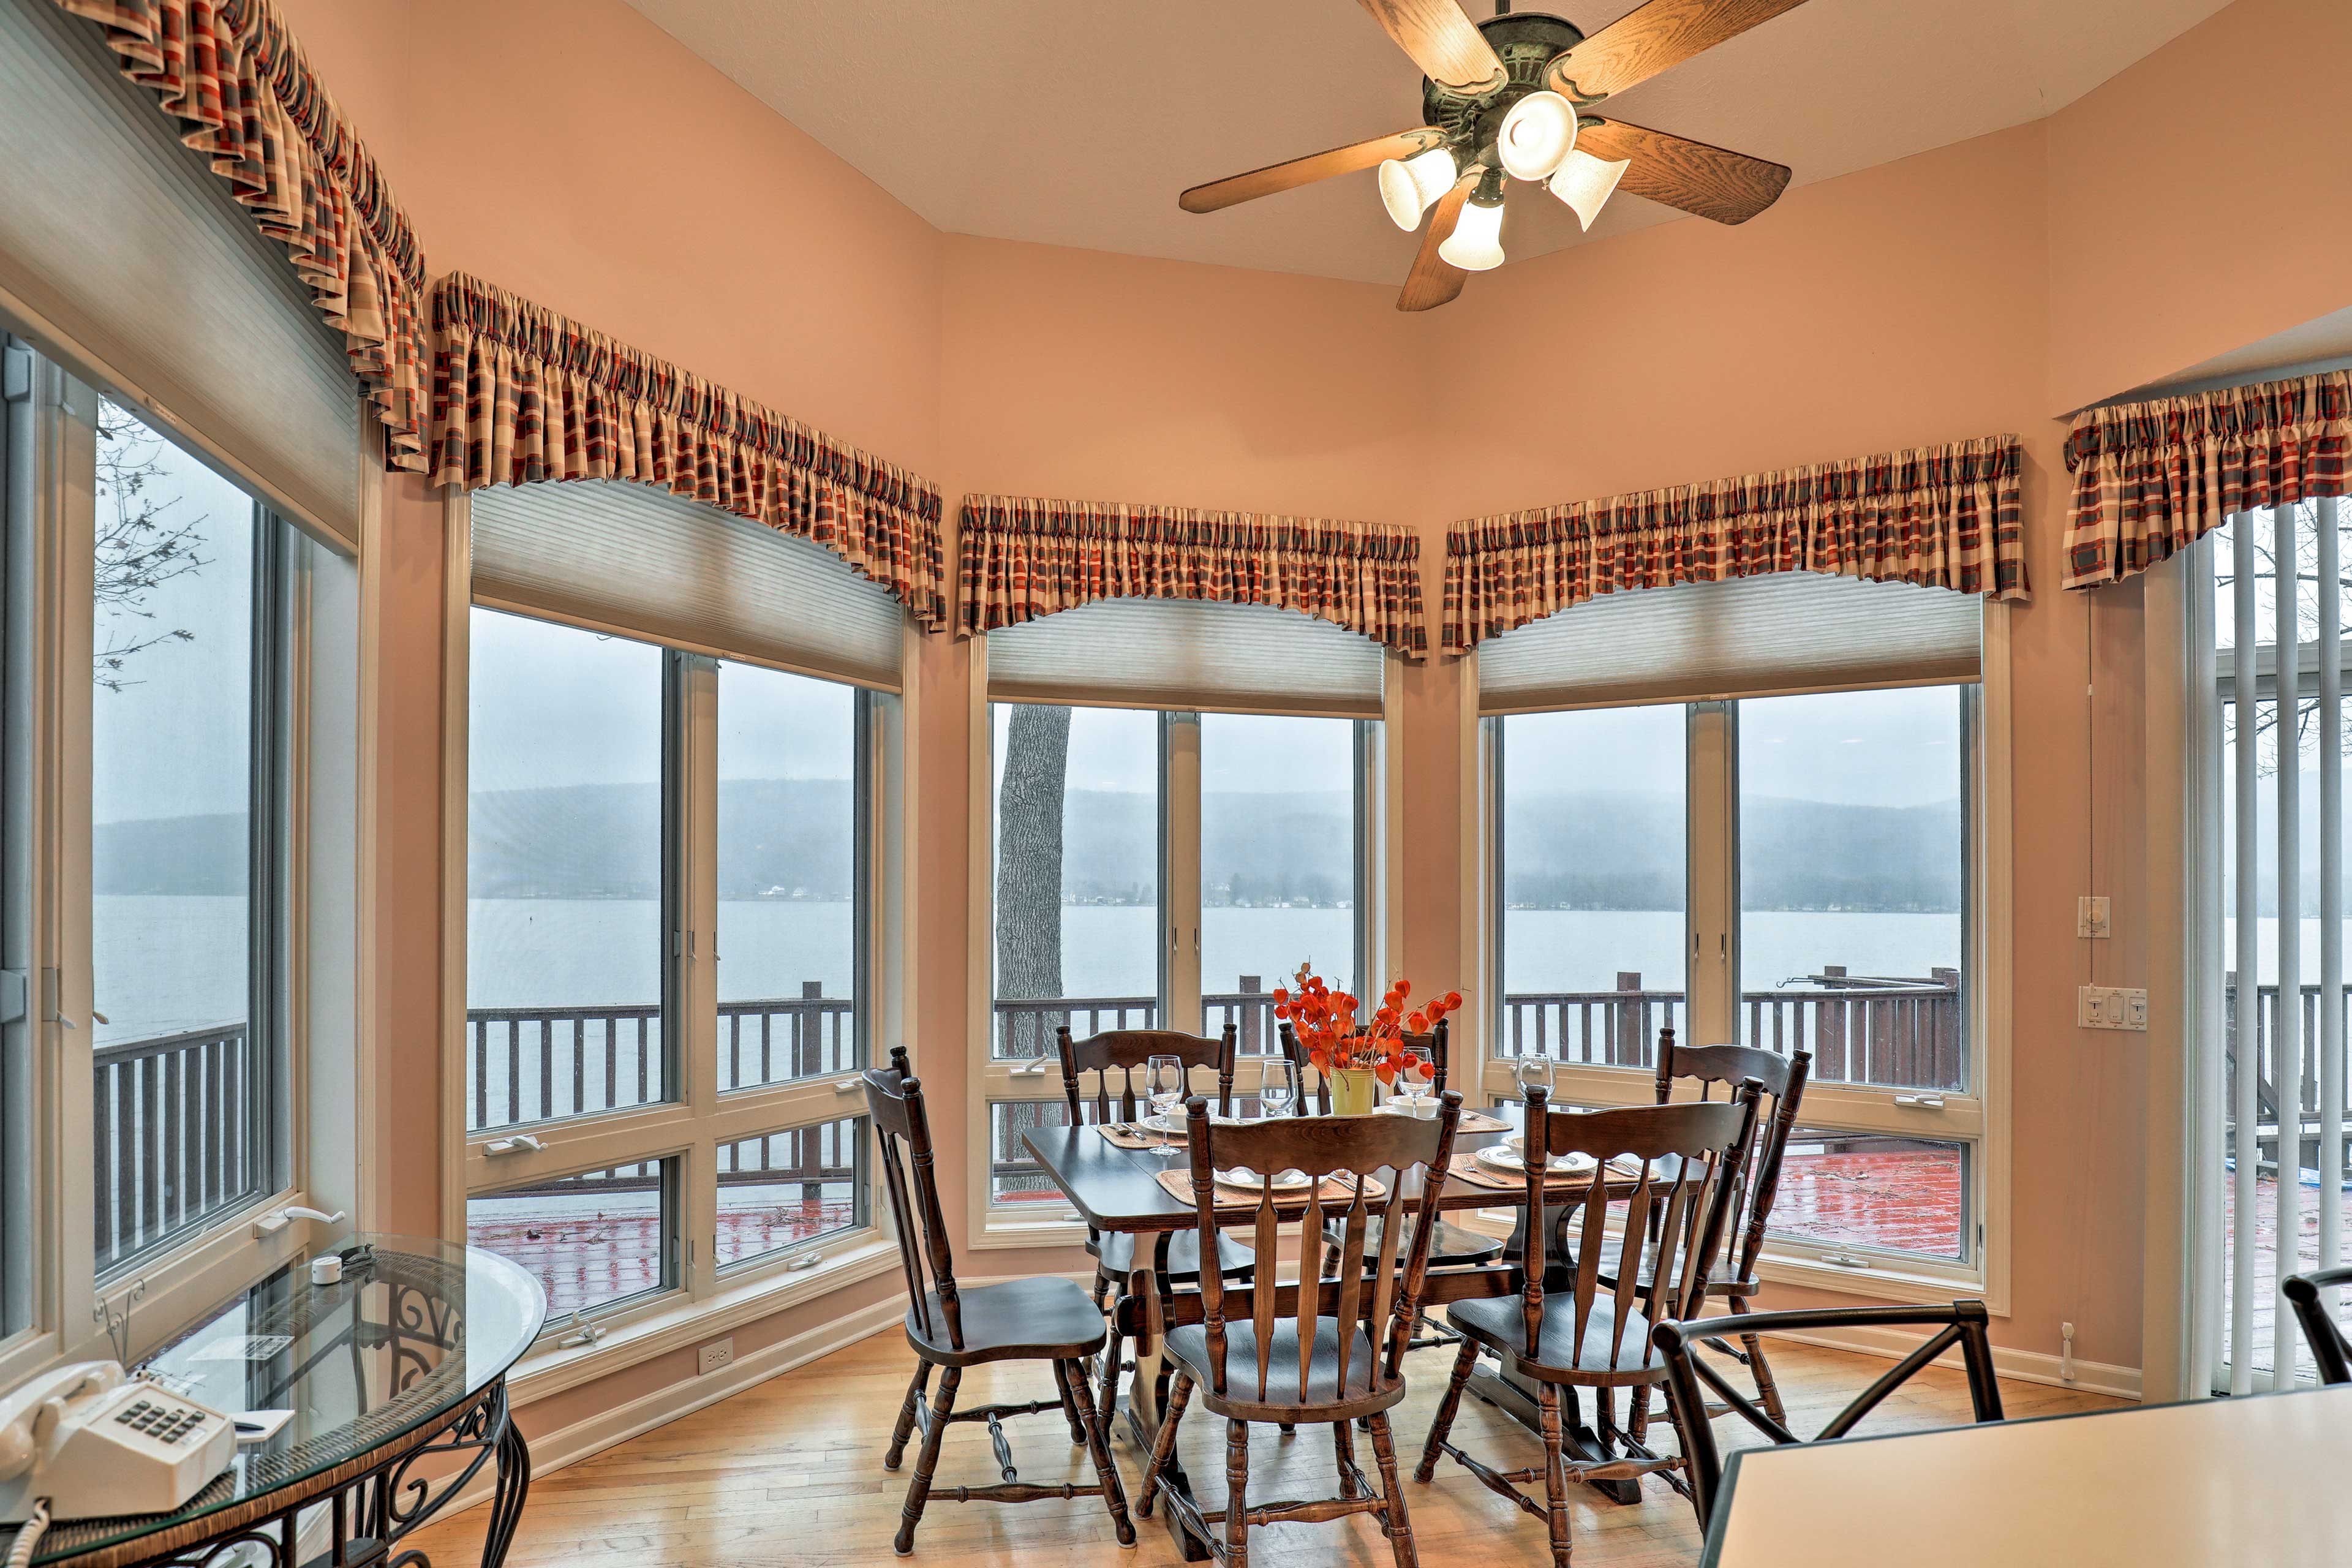 Set the 6-seat dining table and gather for a family meal with a stunning view!